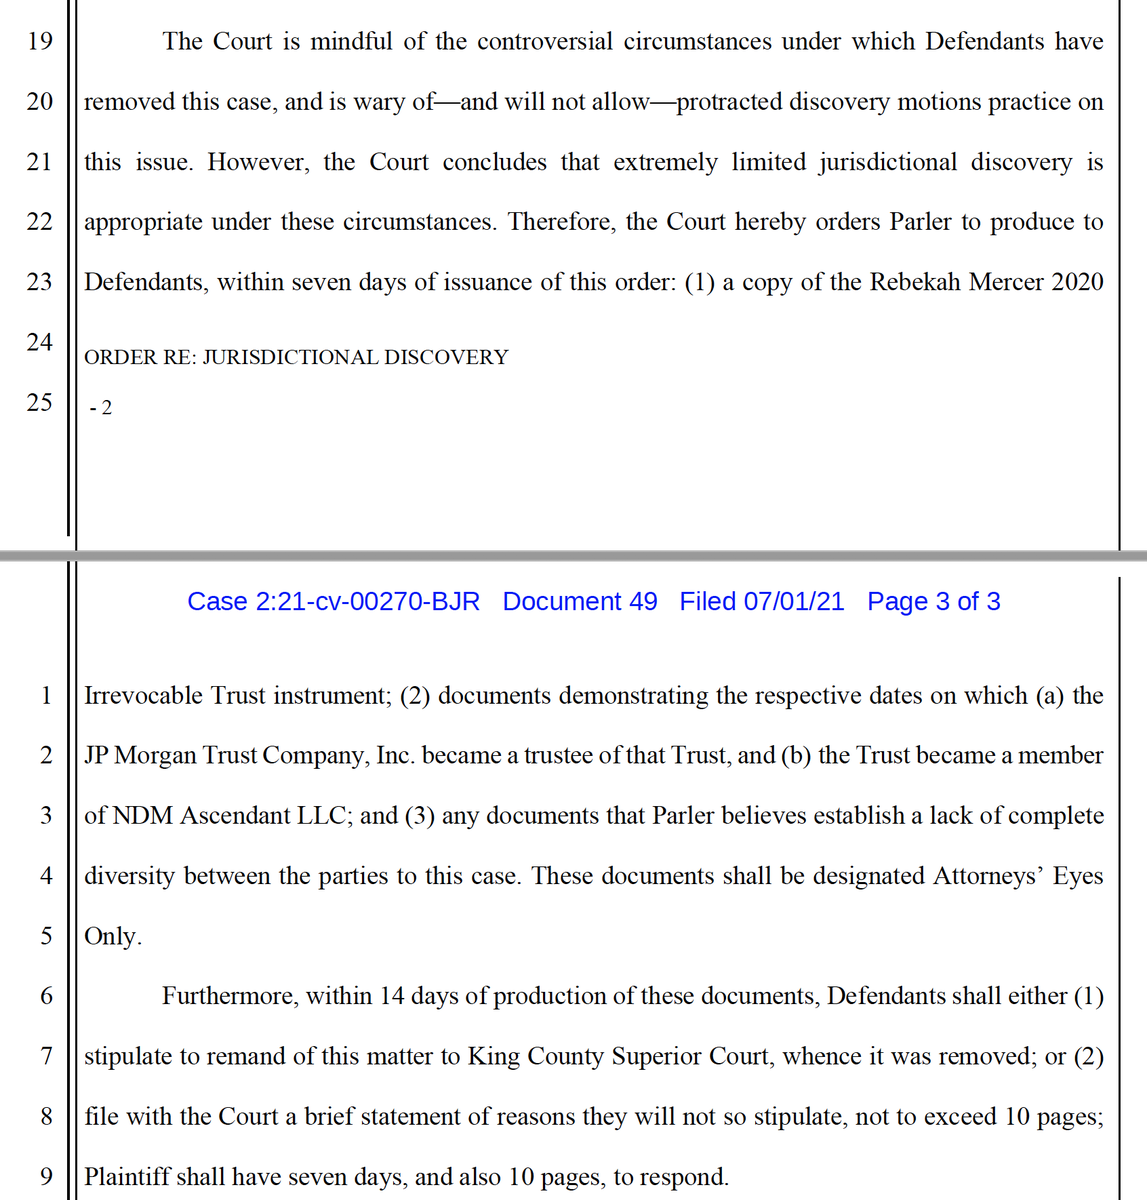 After @parler_app turned over the documents ordered by the court, @amazon apparently is confident that they support its position that the case is properly in federal court. But unfortunately, Amazon's supp brief is almost entirely redacted. https://t.co/ePTnbR6ZXe